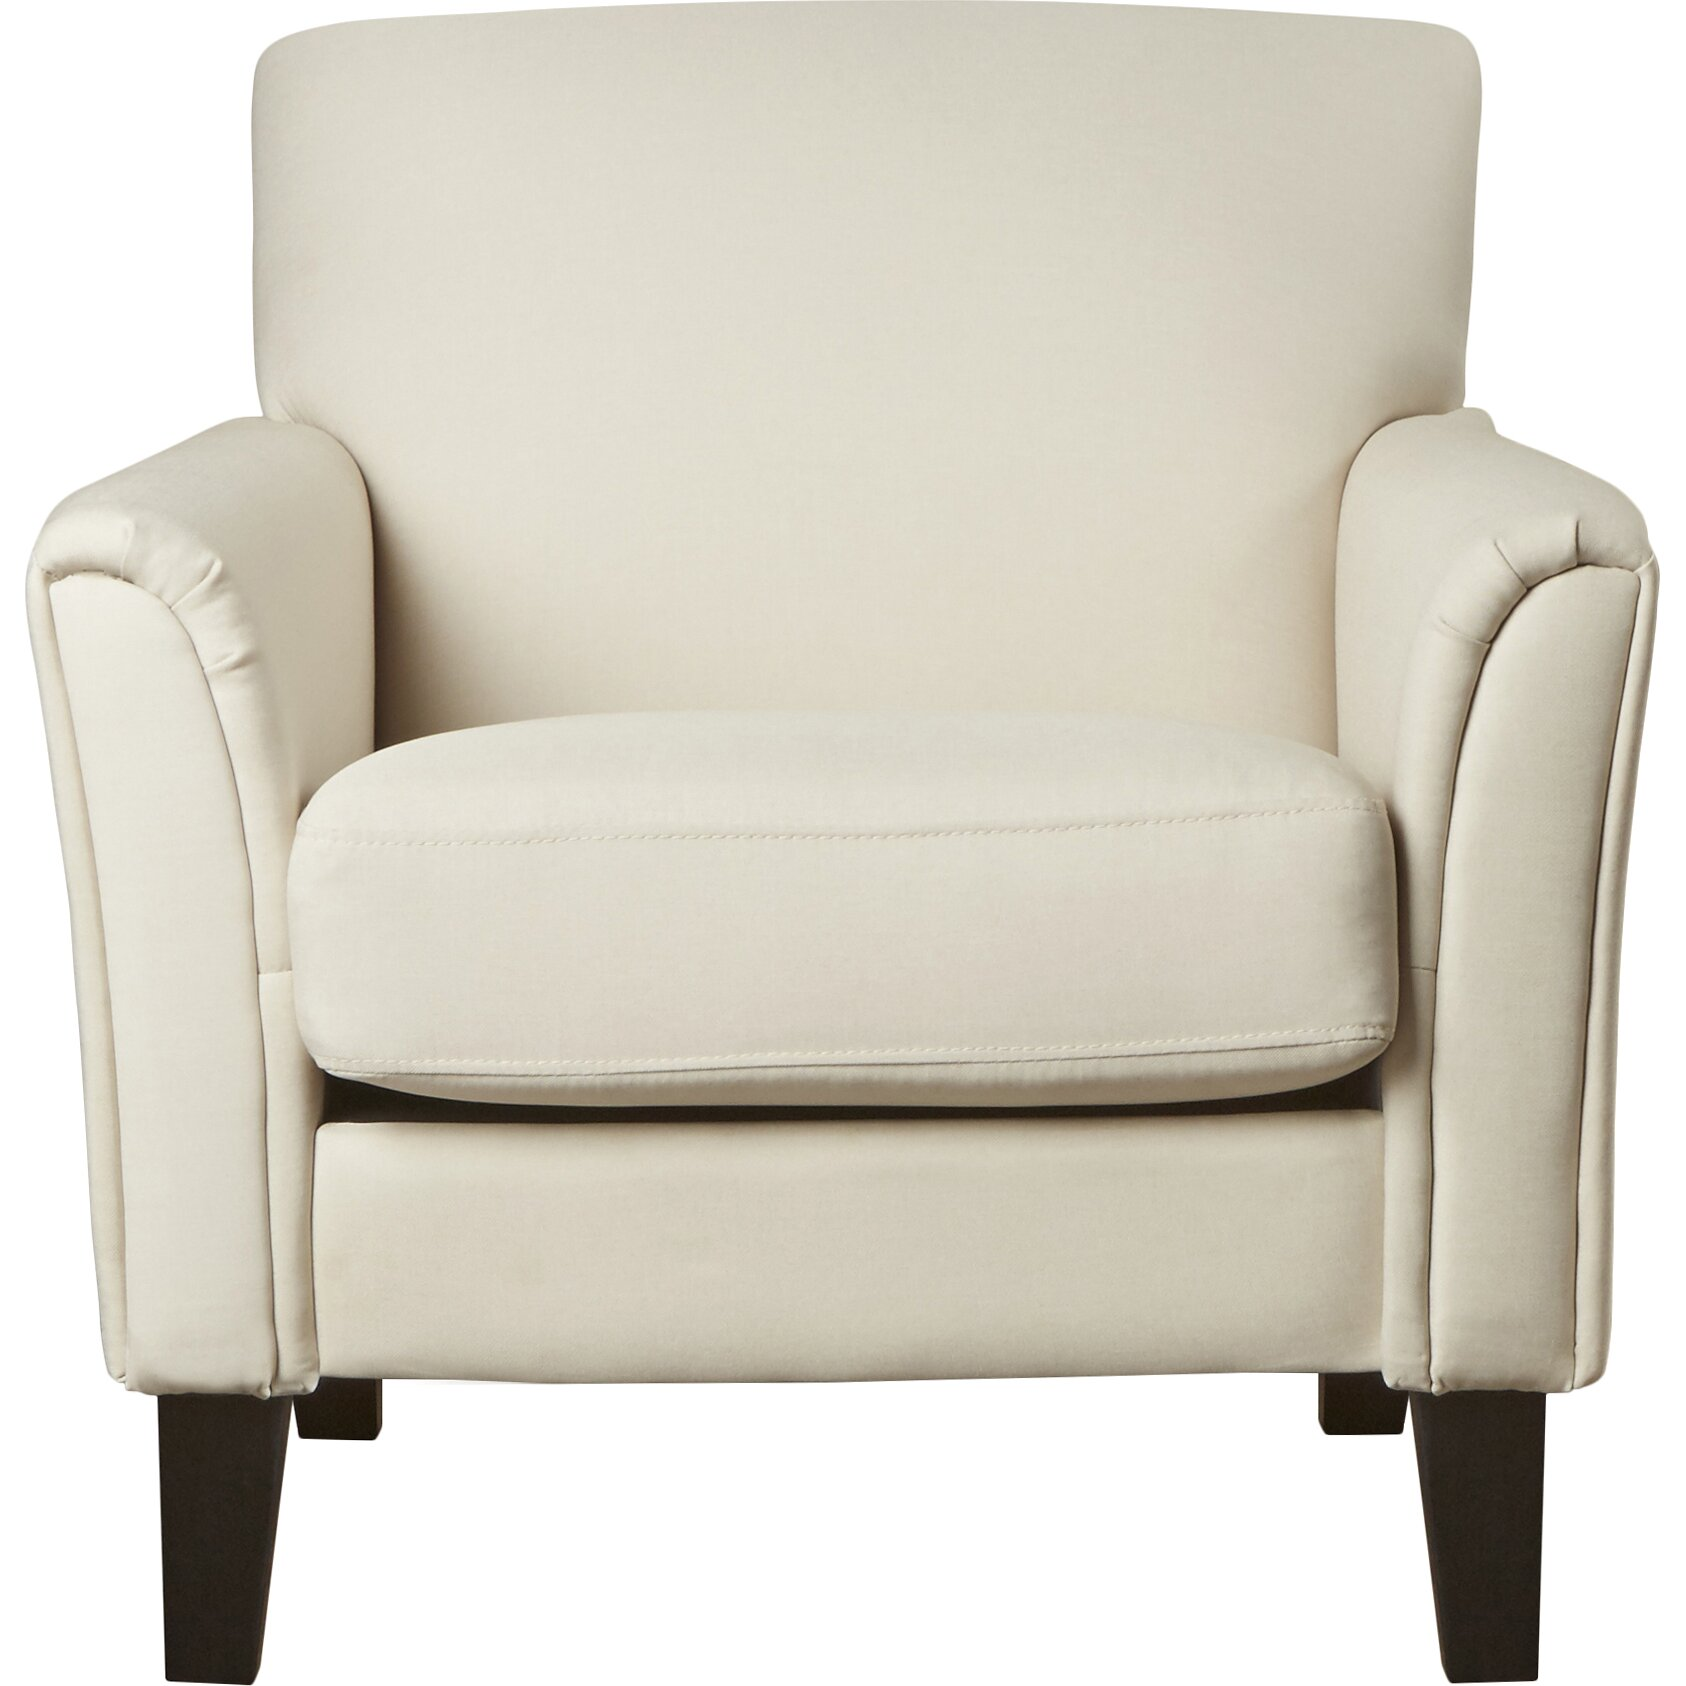 Darby Home Co Crawford Modern Arm Chair & Reviews